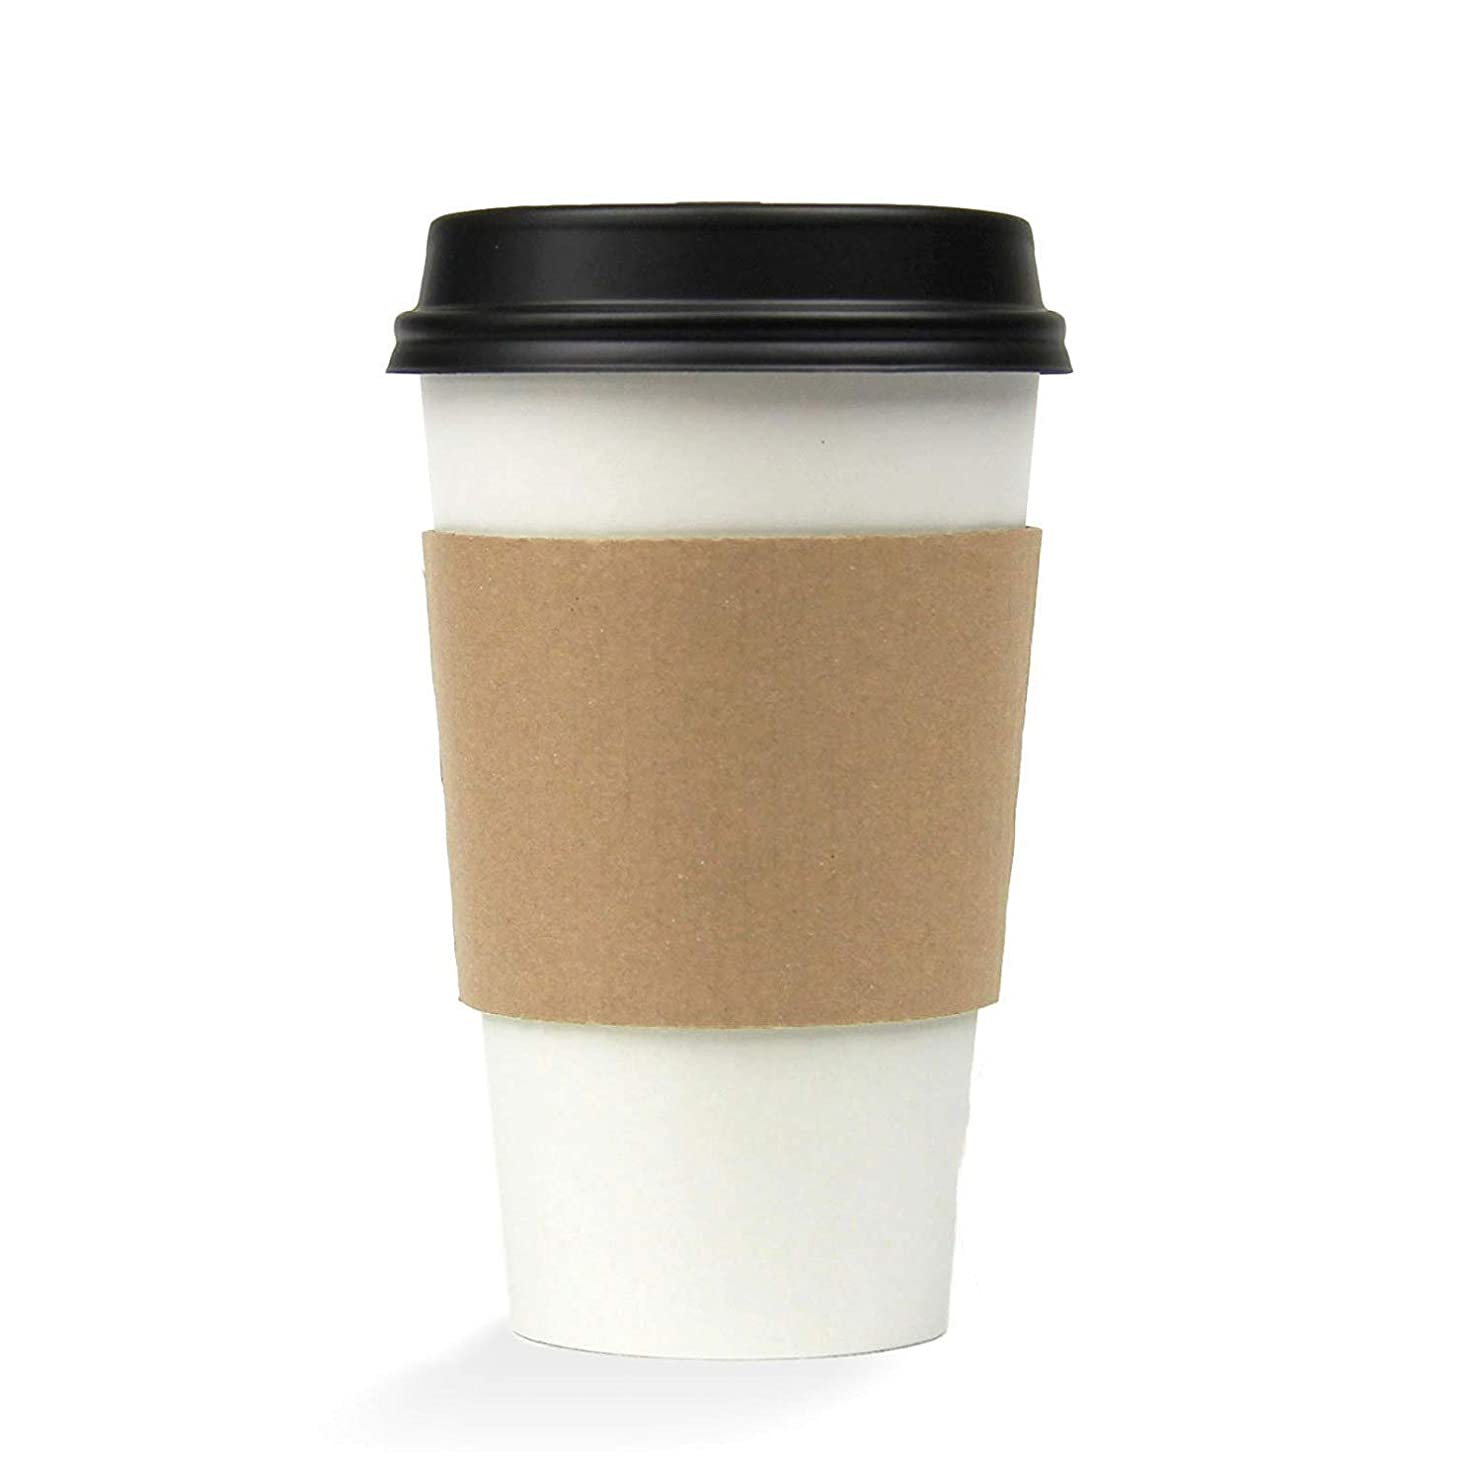 16 OZ Hot Beverage Disposable White Paper Coffee Cup with Black Dome Lid and Kraft Sleeve Combo, Medium Grande [50 Pack]